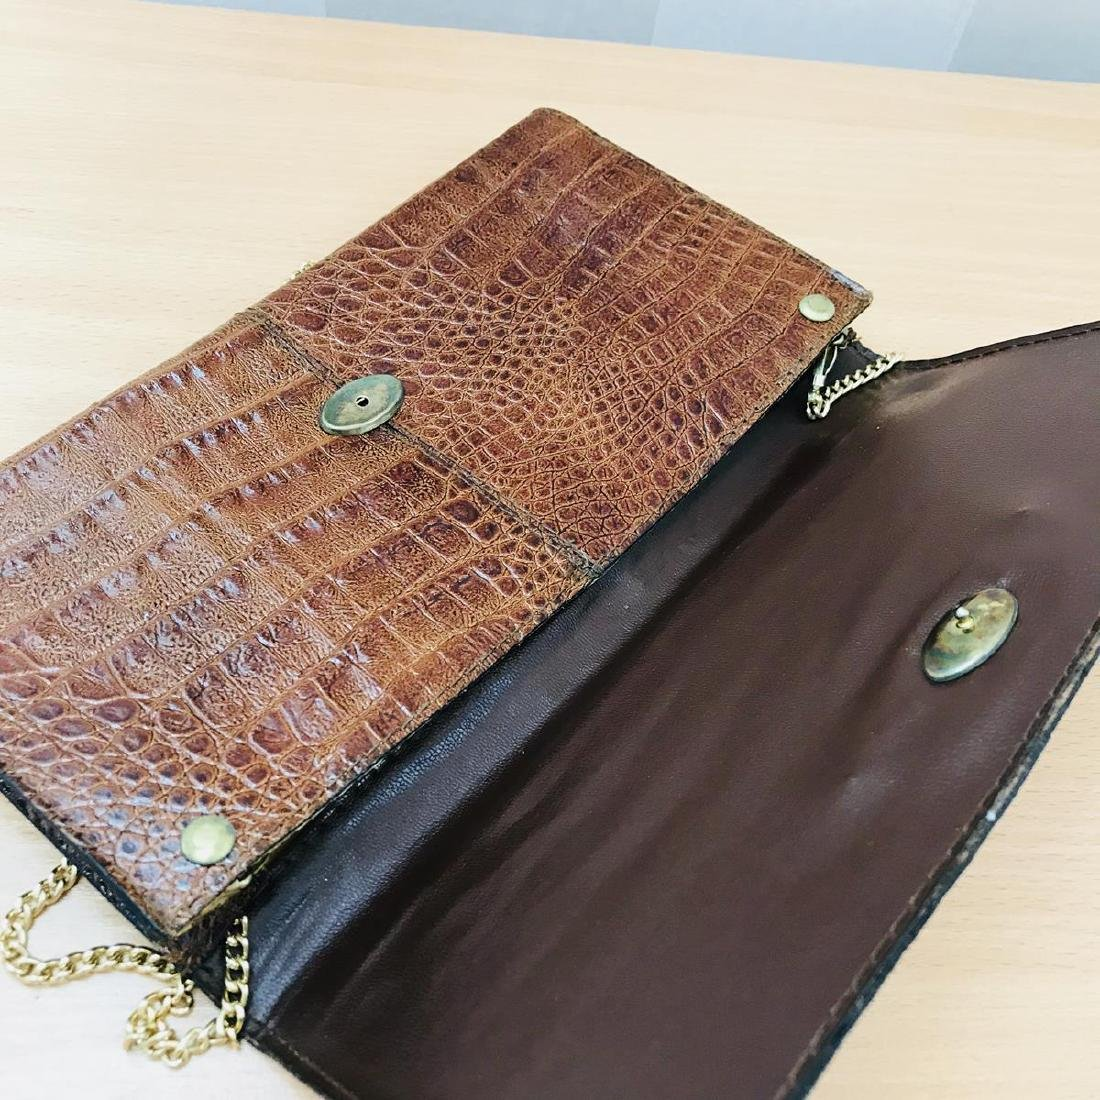 Vintage Crocodile Leather Clutch Bag - 7